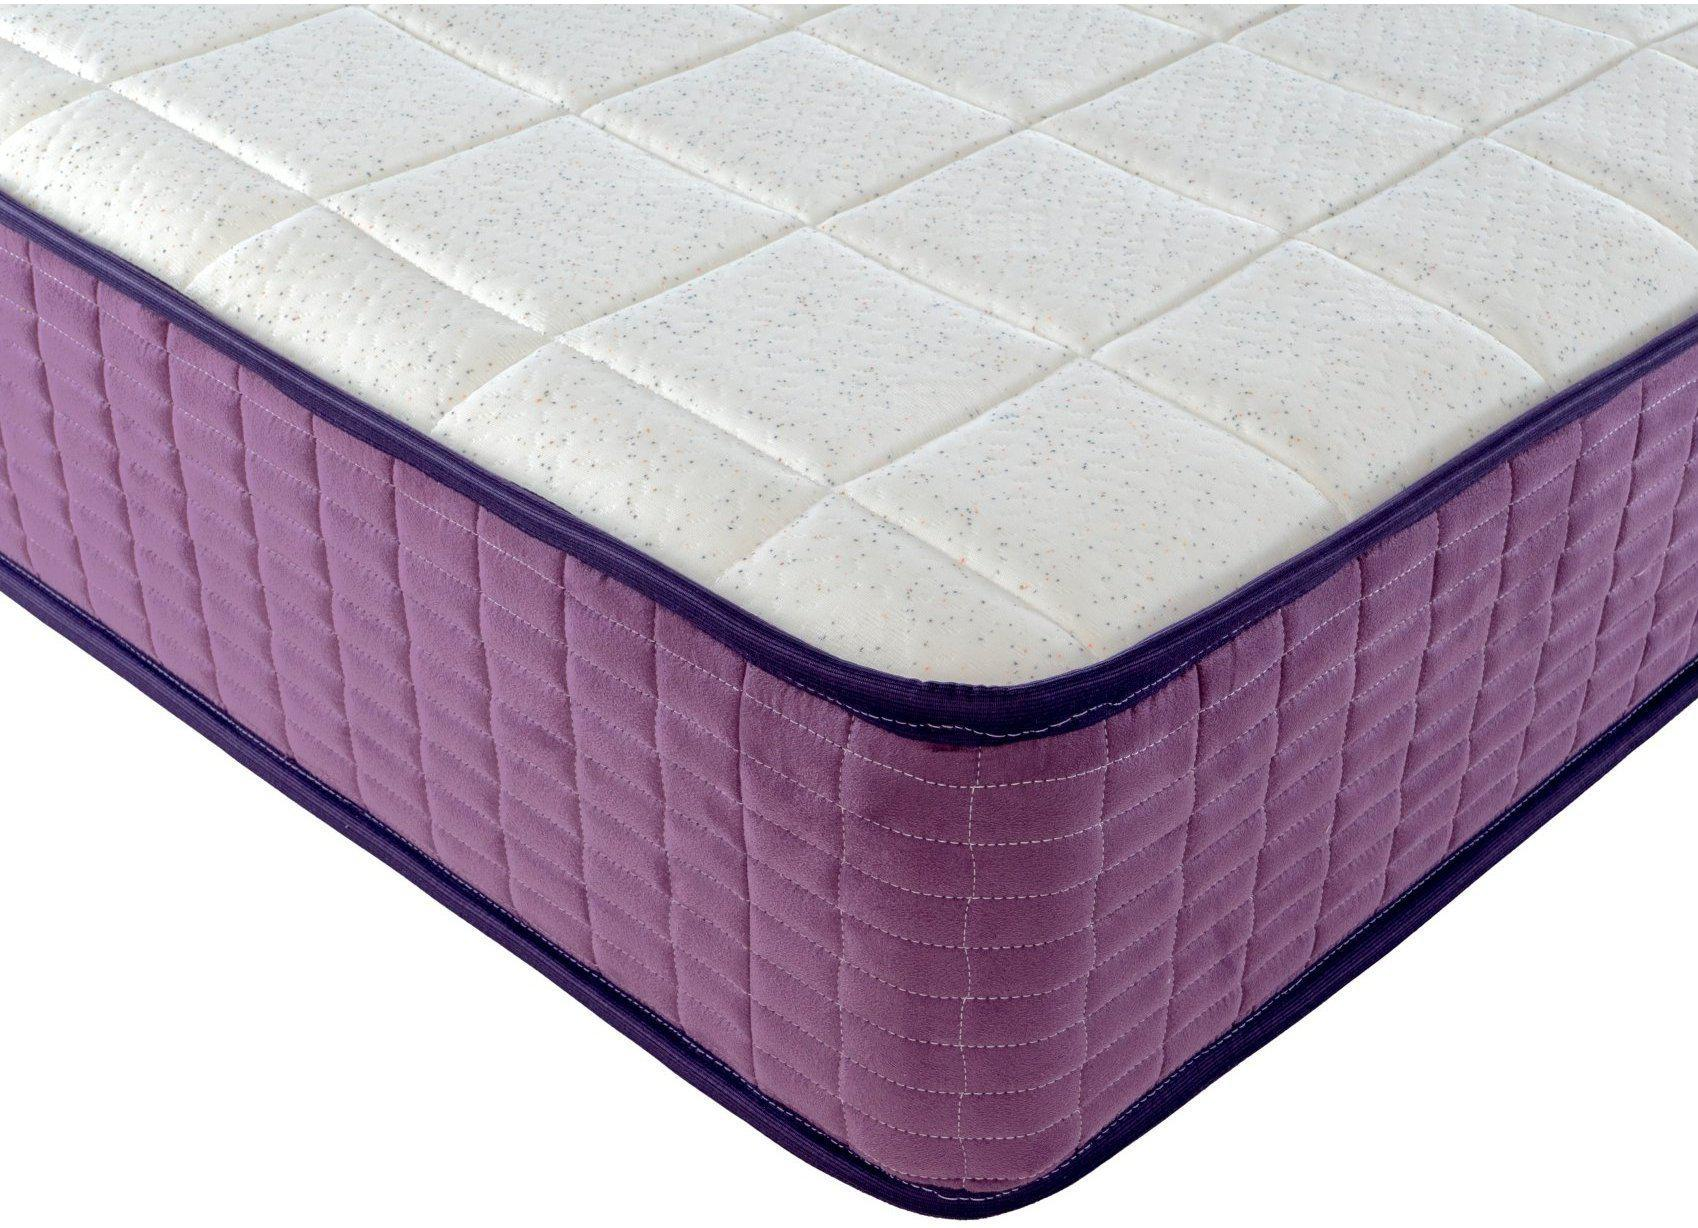 Bio Foam natural Mattress